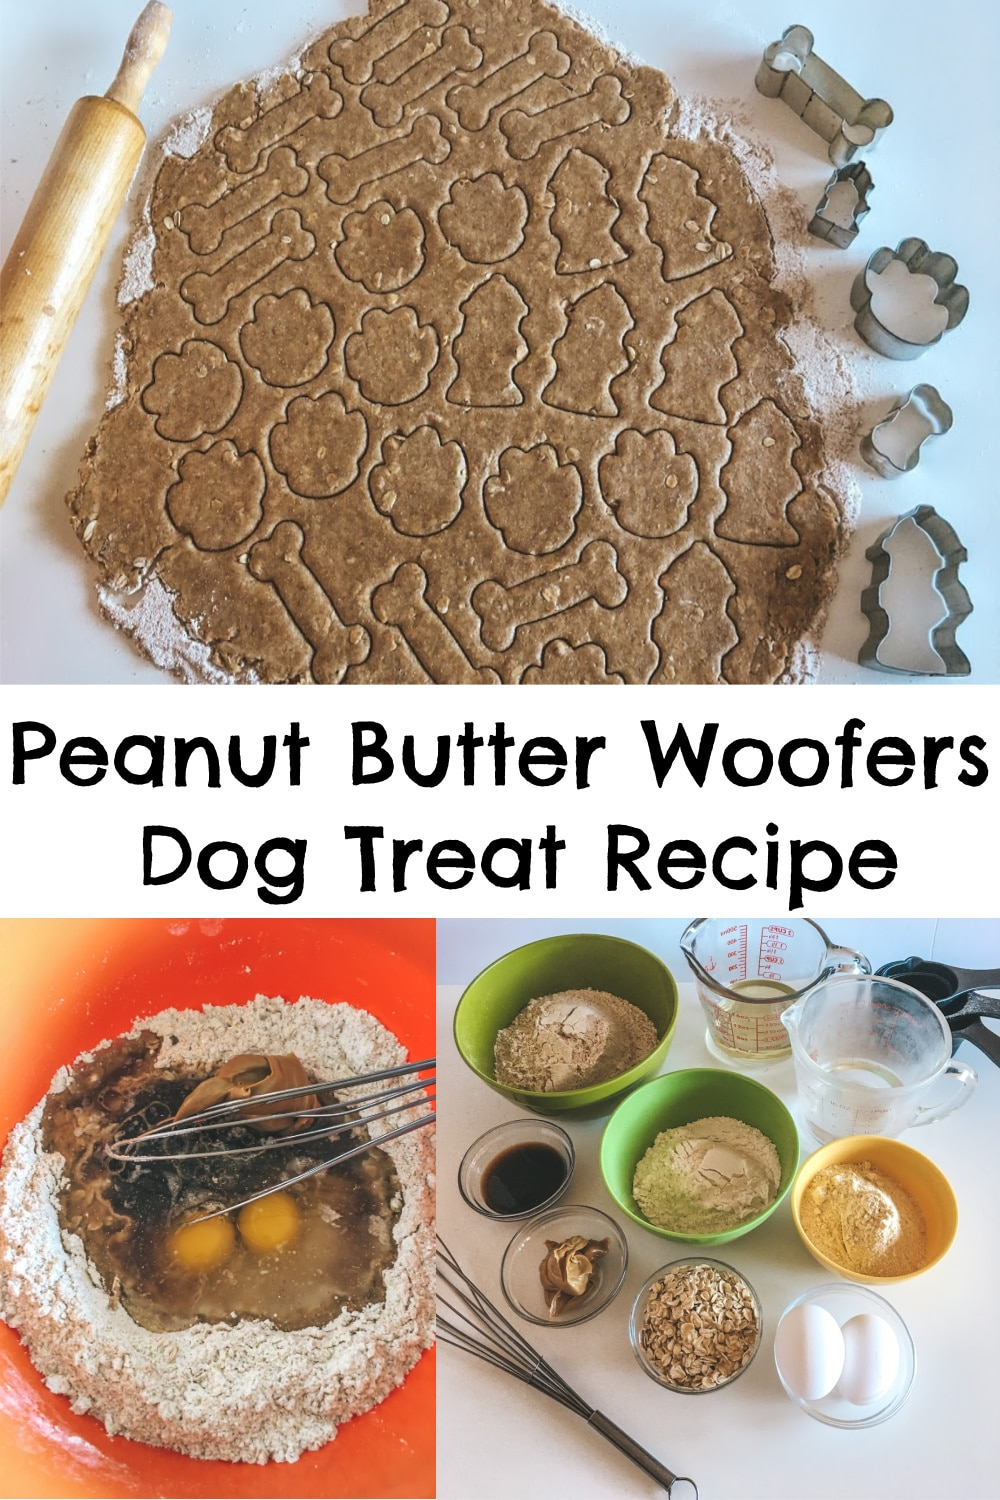 Peanut Butter Woofers Dog Treat Recipe